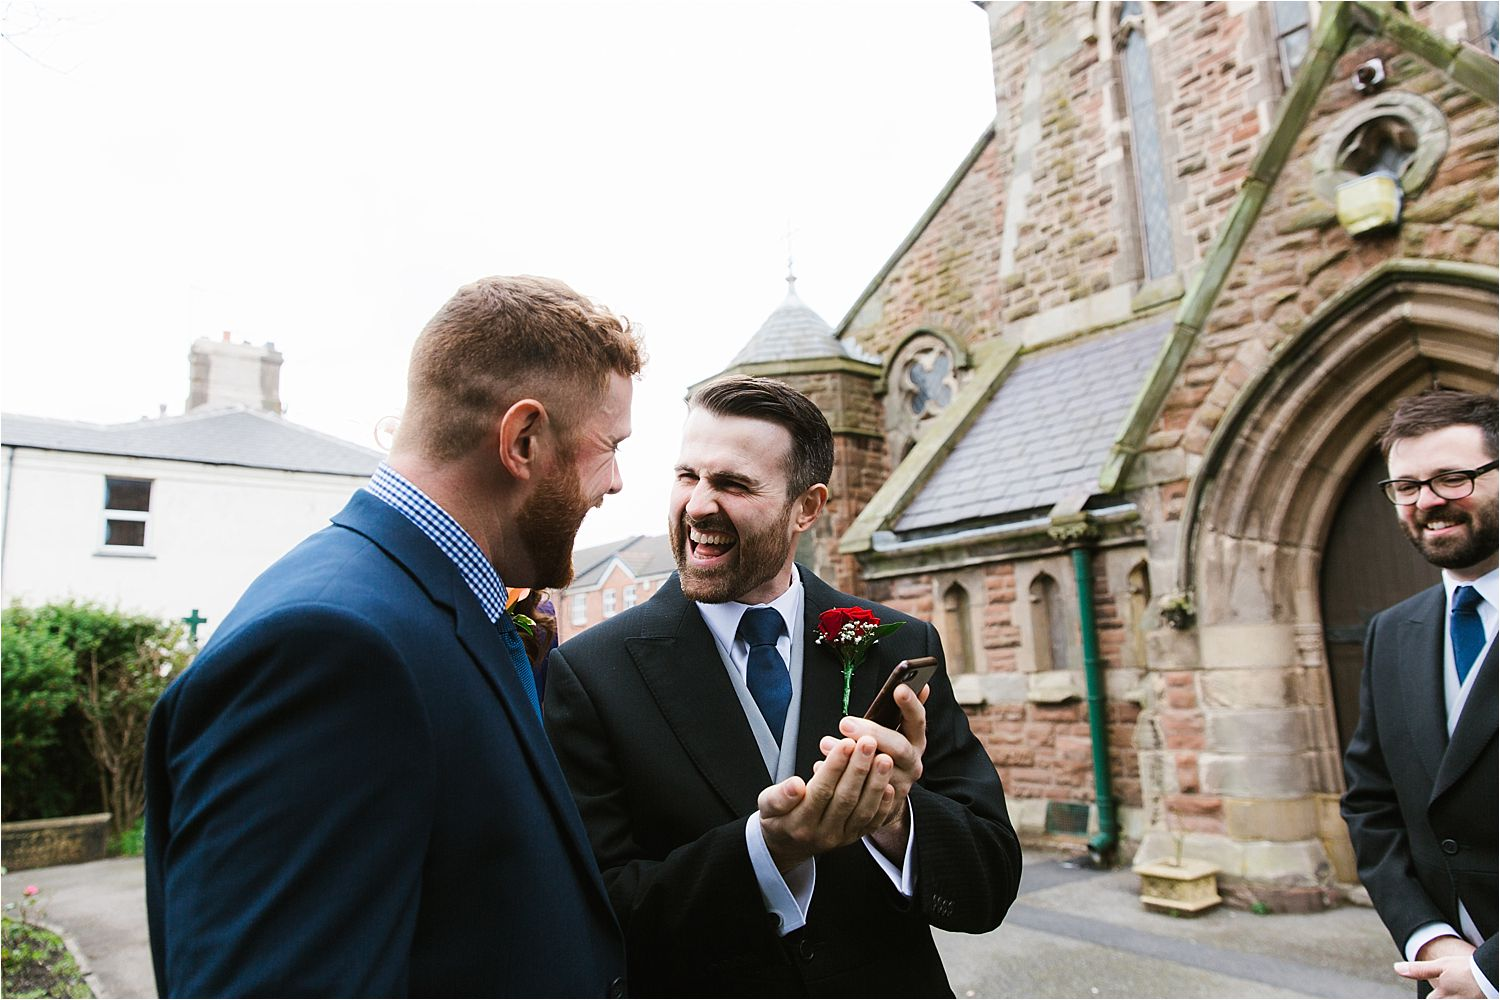 Bridegroom and ushers share a joke outside Cumbrian church